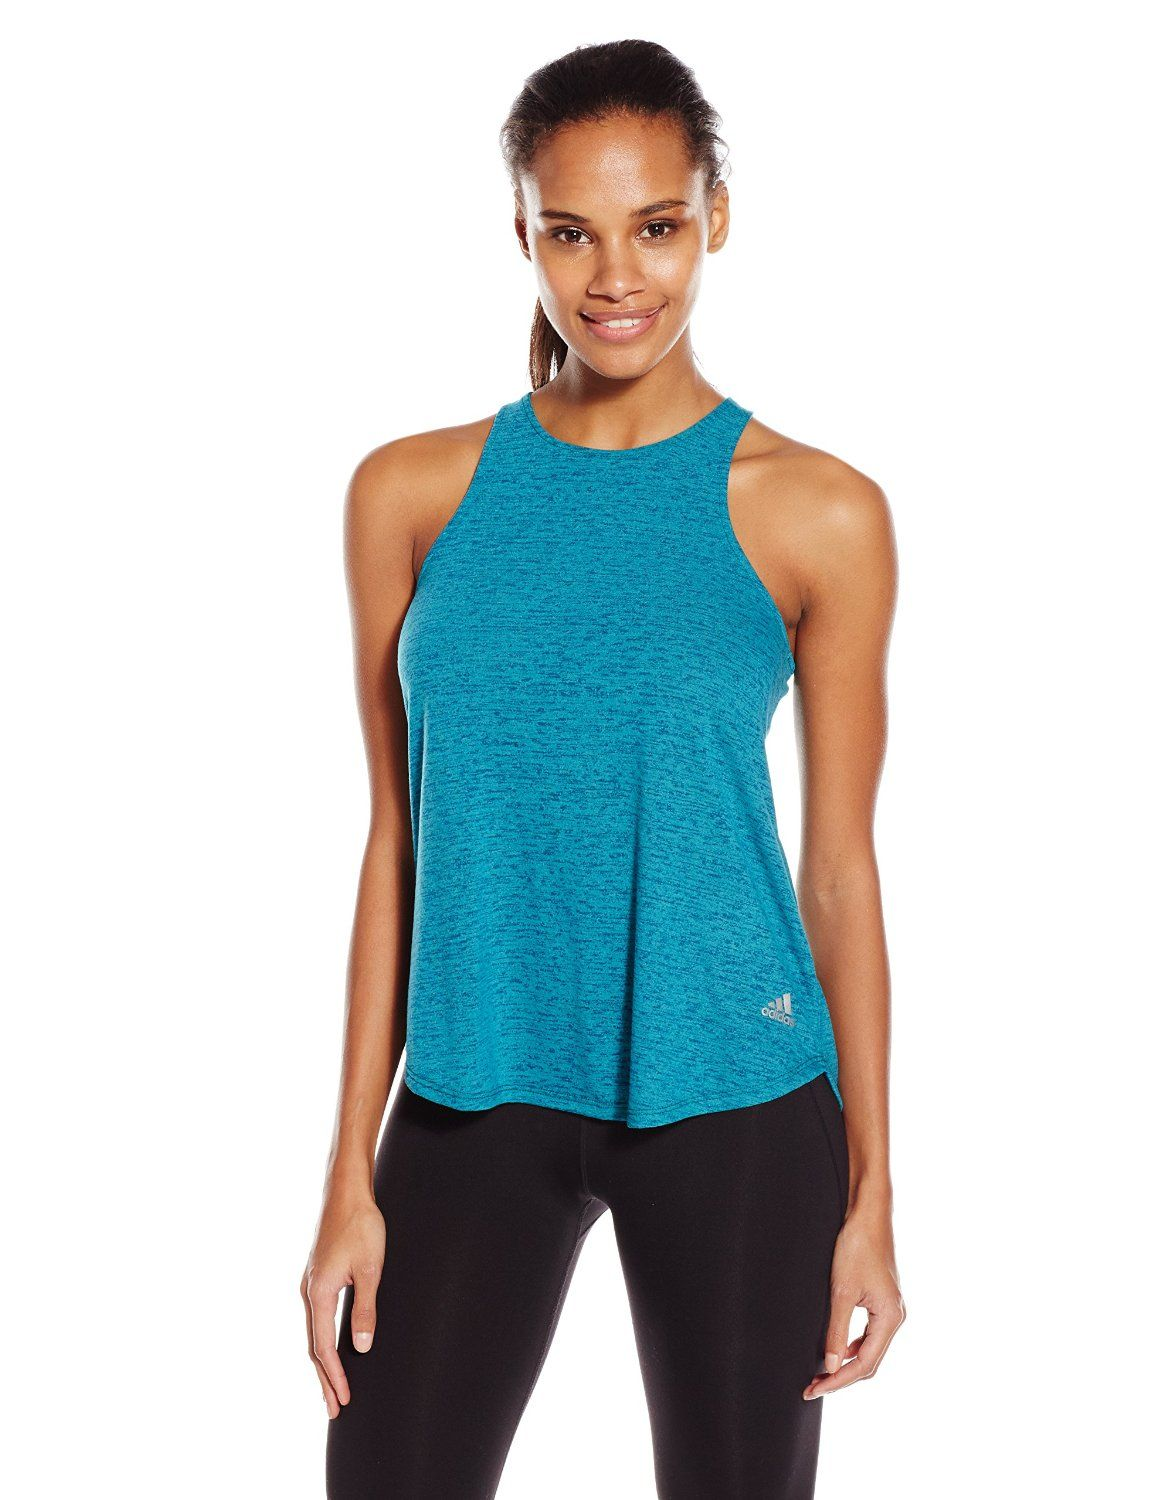 : adidas Performance Women's 247 Tank Top